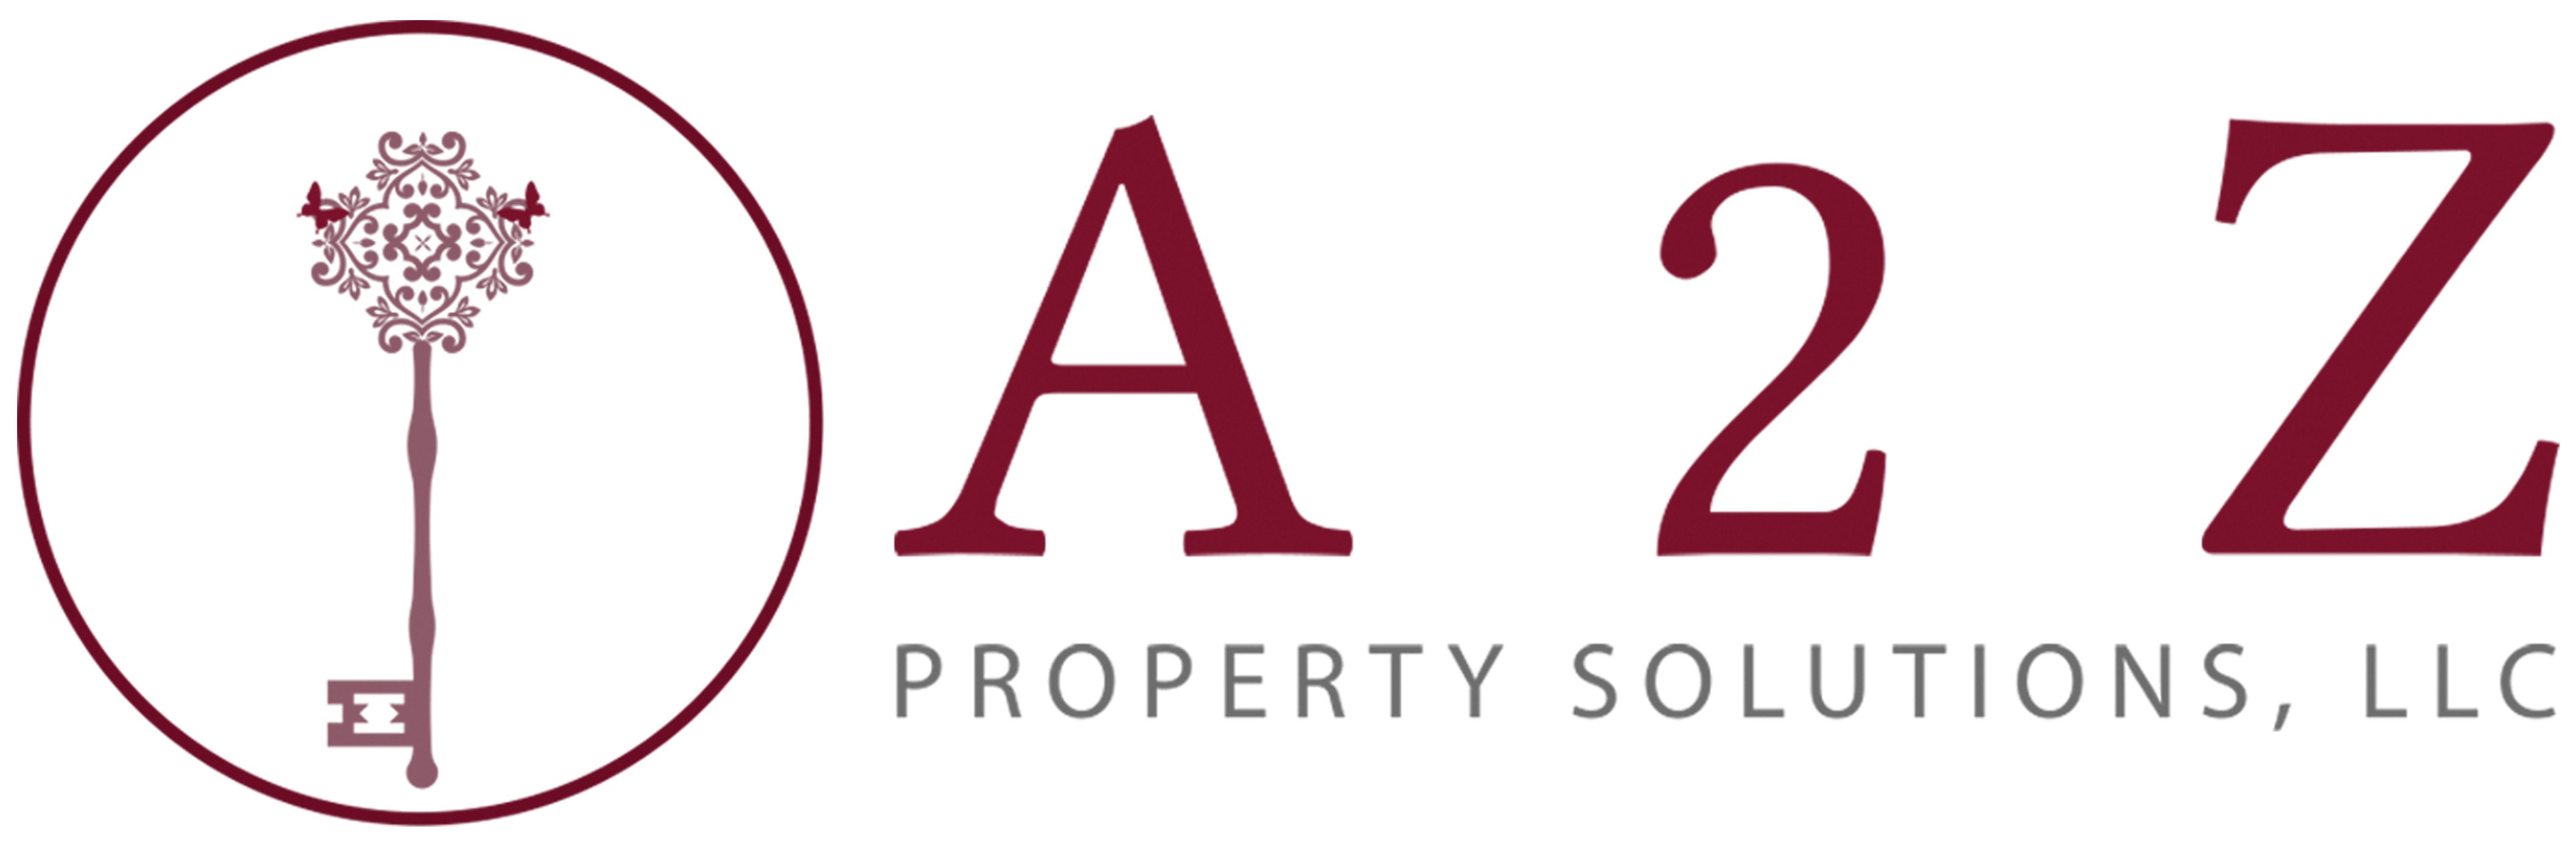 A2Z Property Solutions, LLC